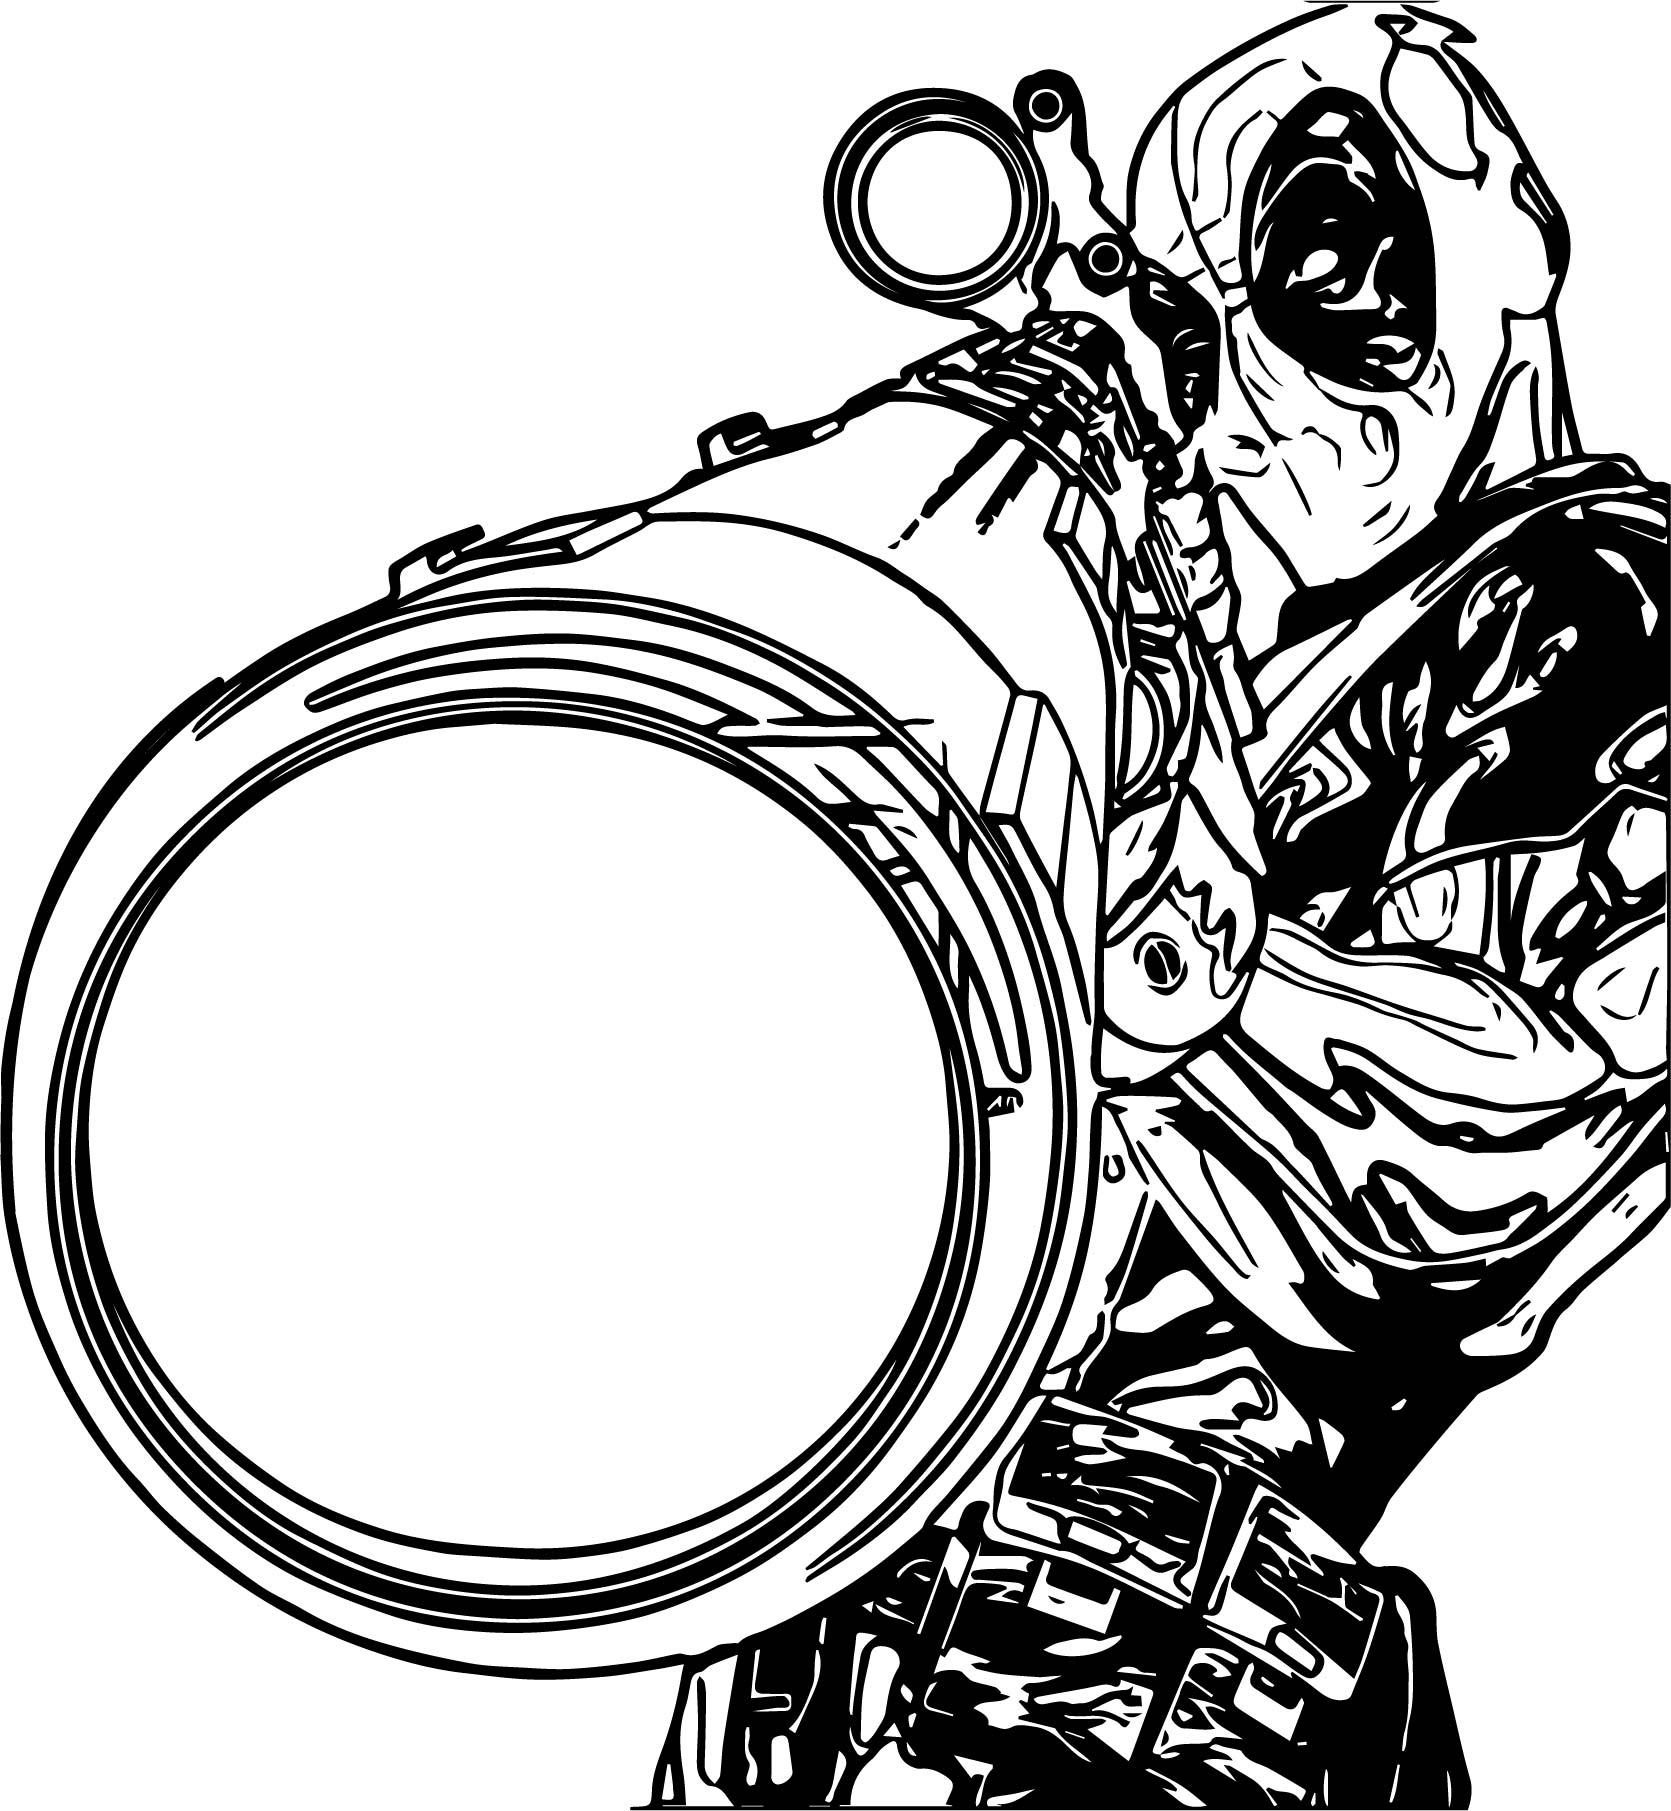 Deadpool Coloring Pages: Deadpool Sniper Coloring Page